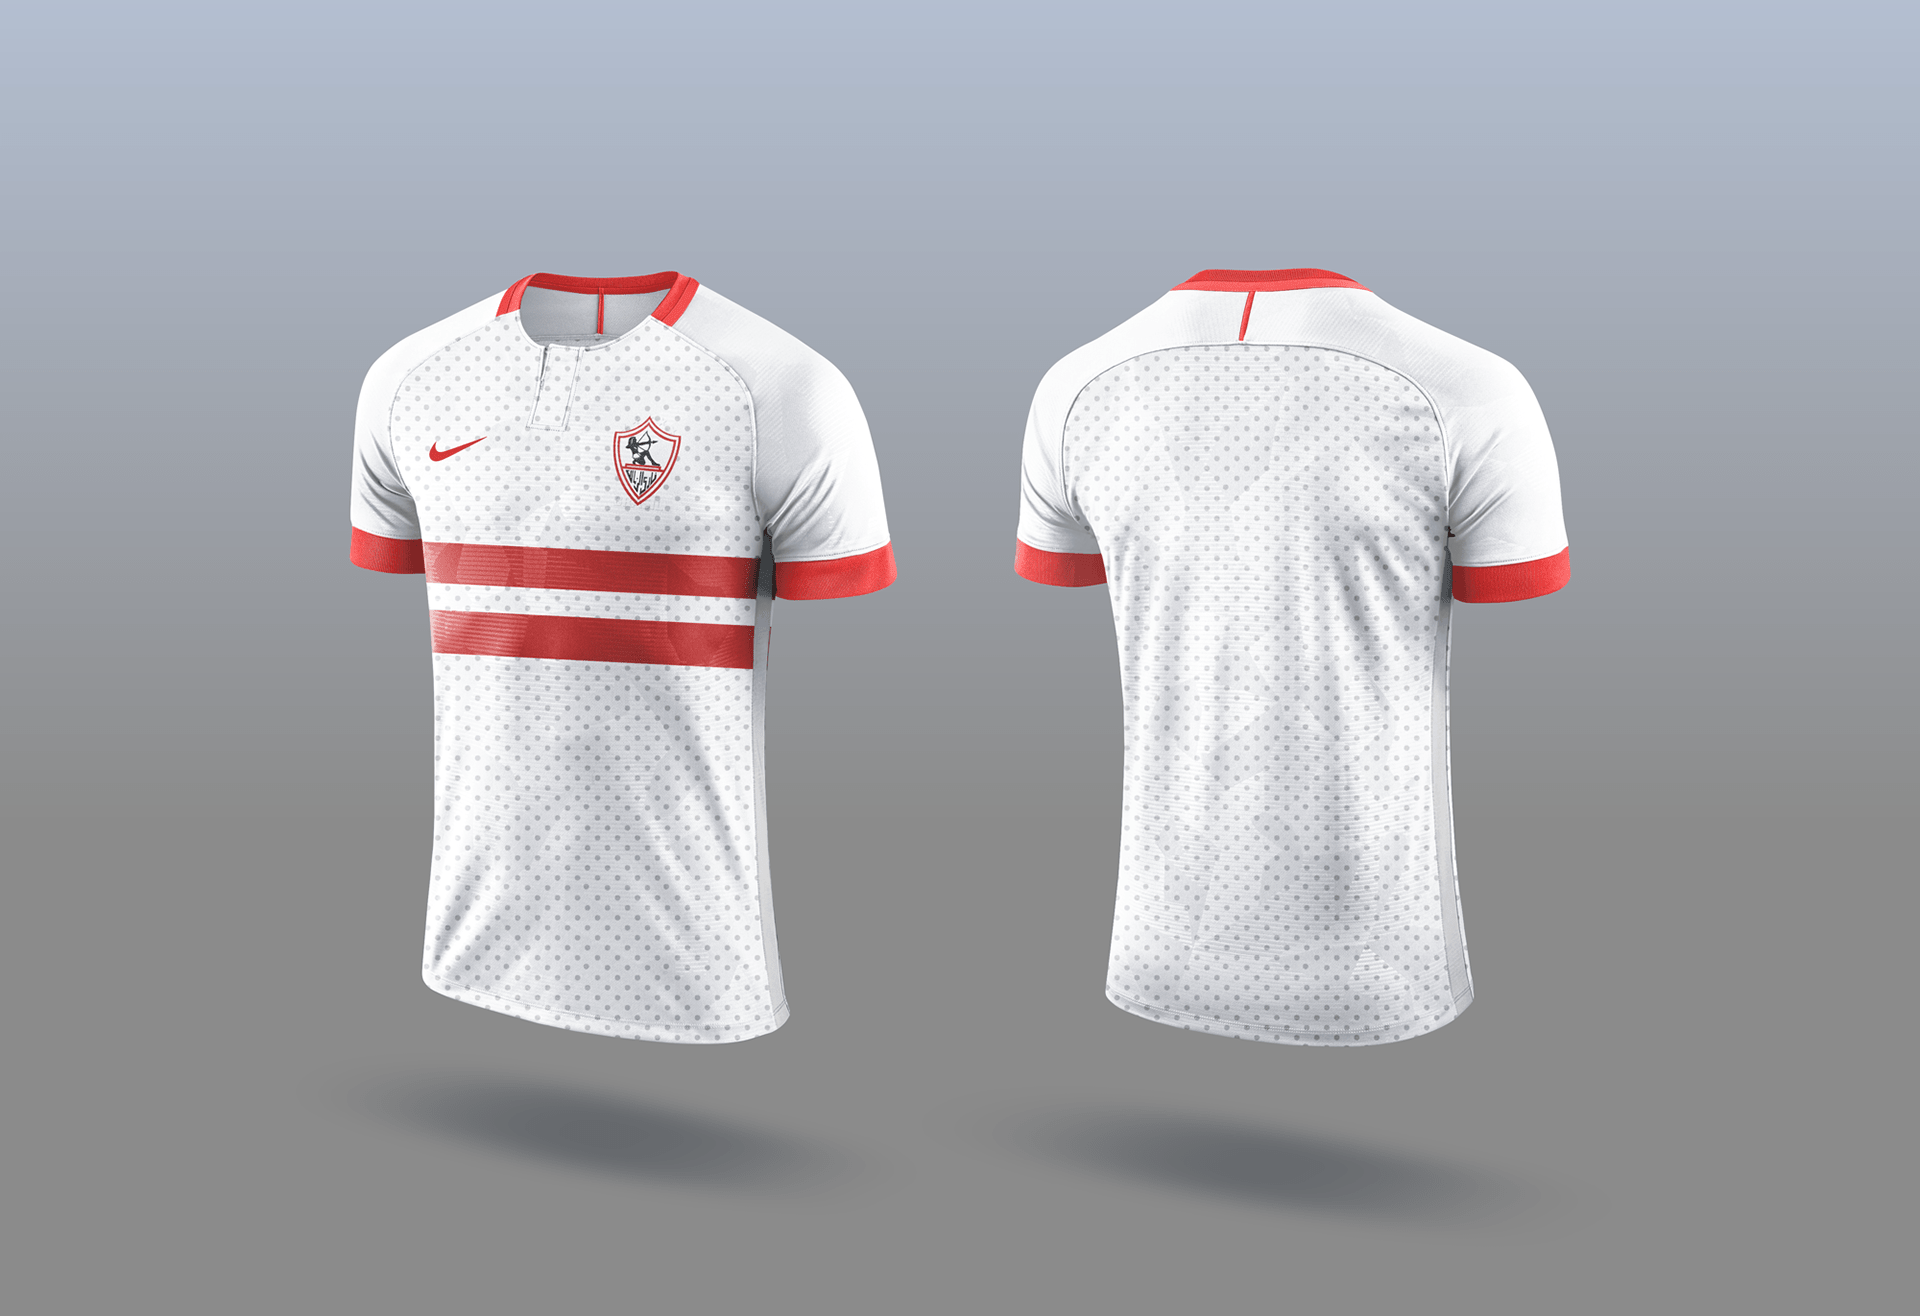 Download Mockup Nike 2019 Free Psd In 2021 Sport Shirt Design Shirt Mockup Mockup Psd